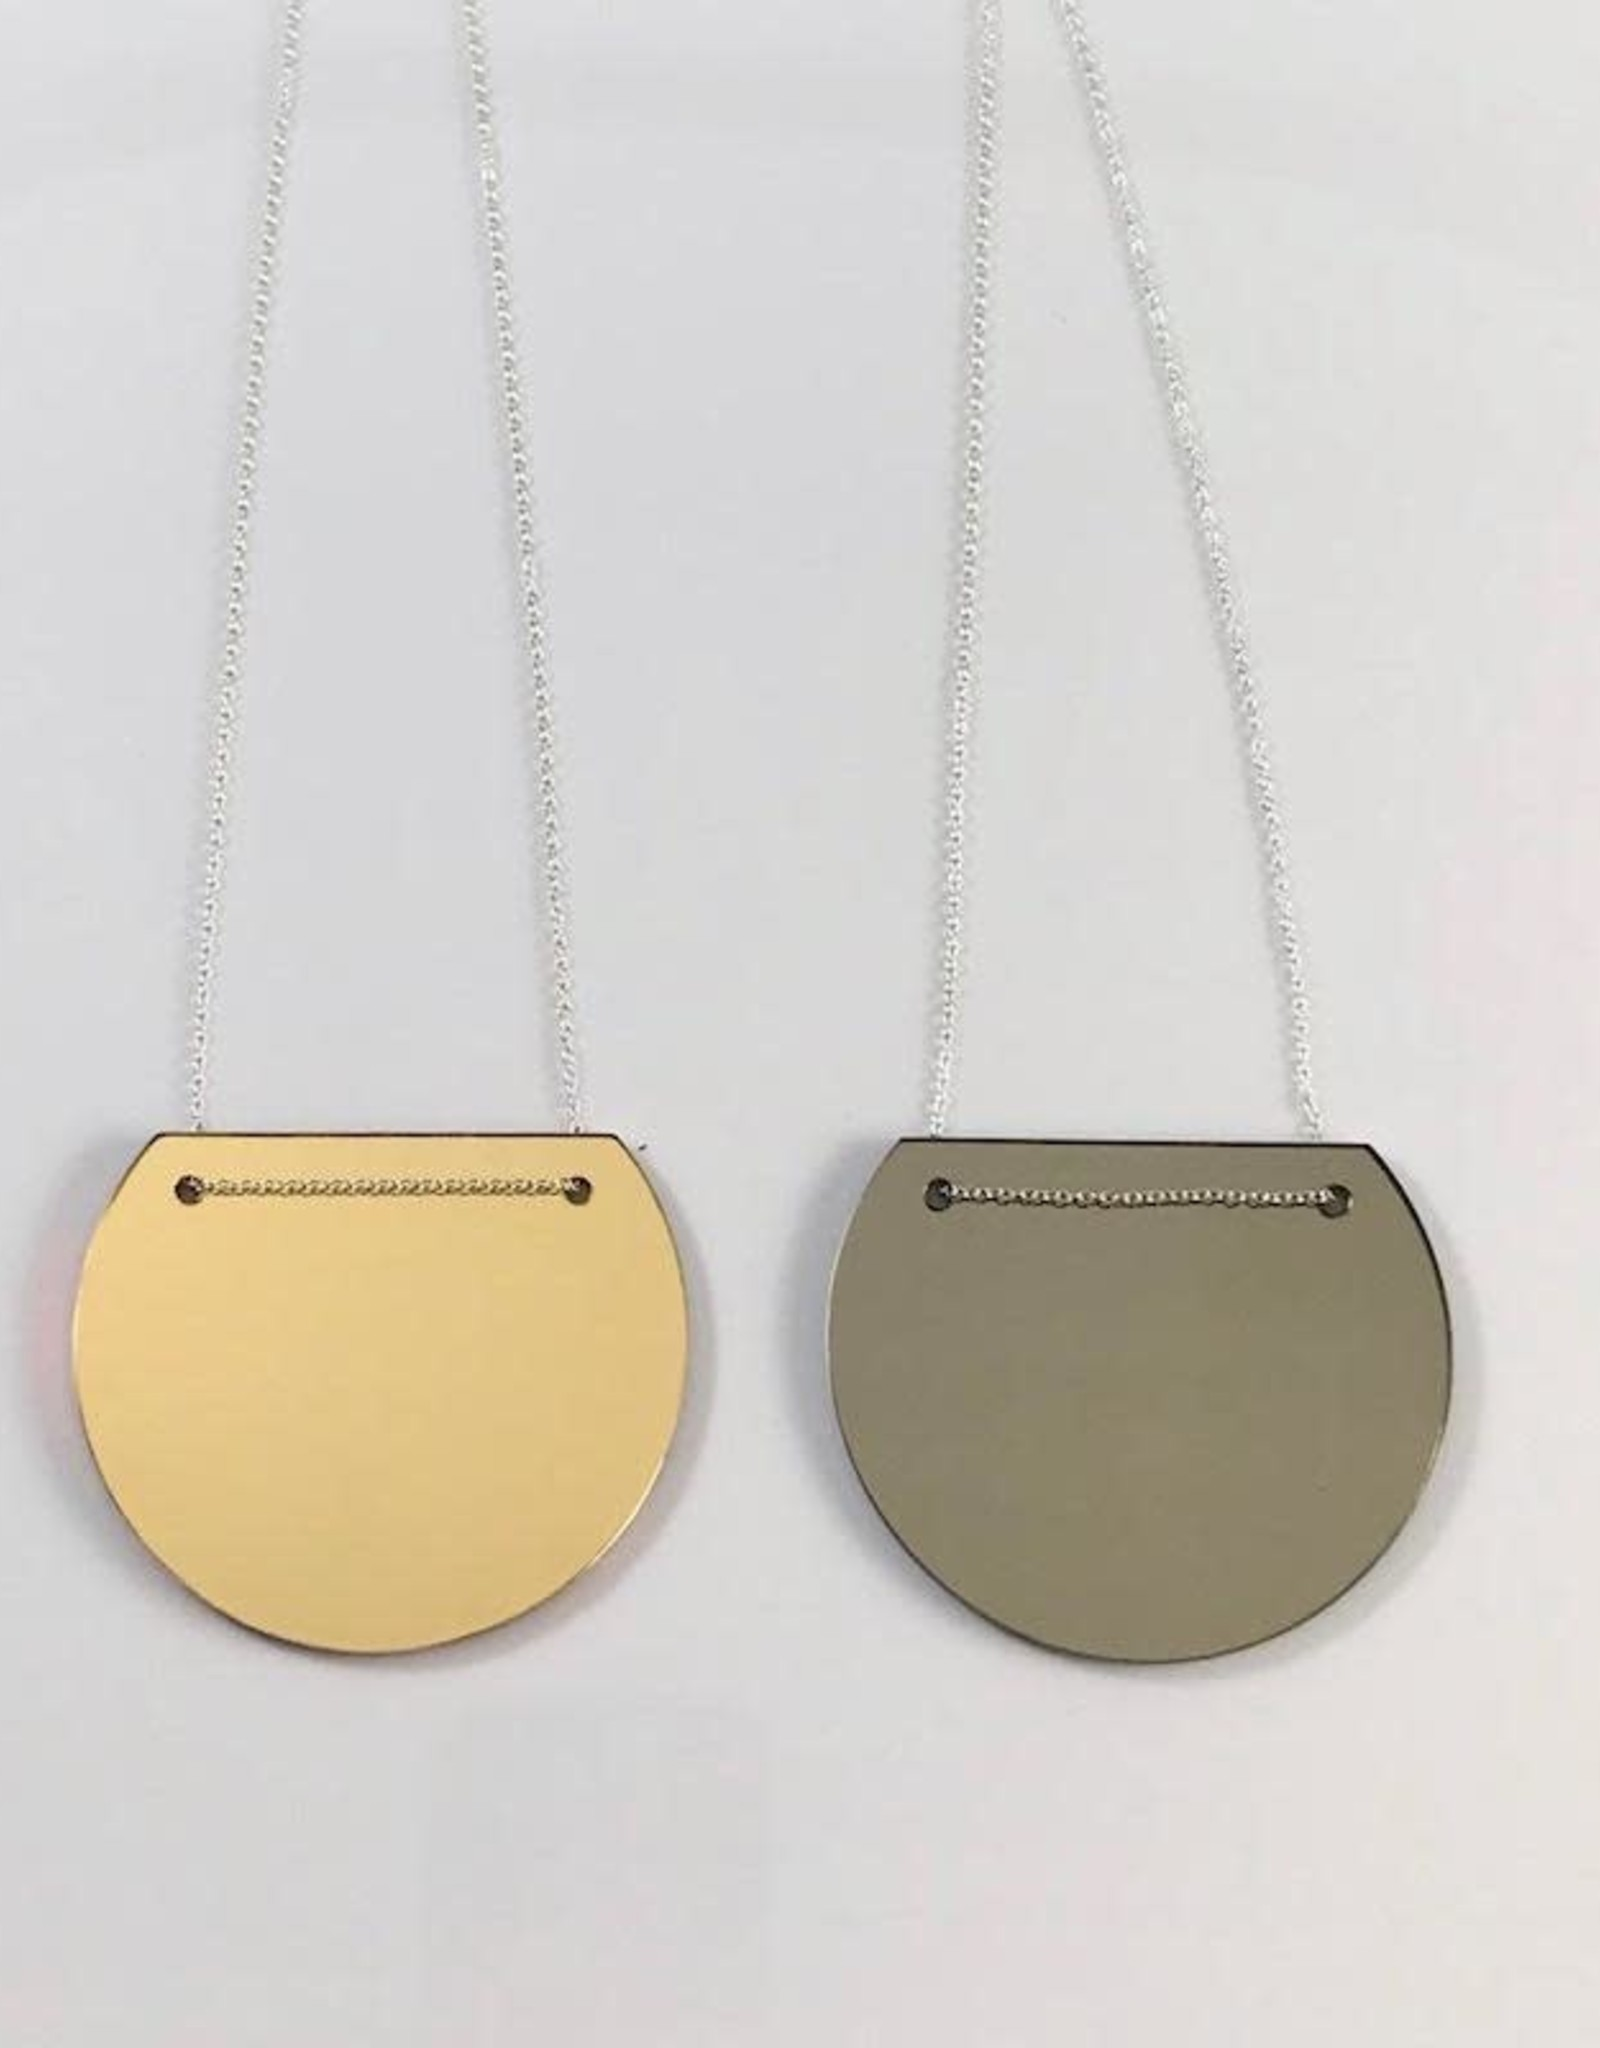 Modern Viva Necklace made from Rescued Architectural Materials